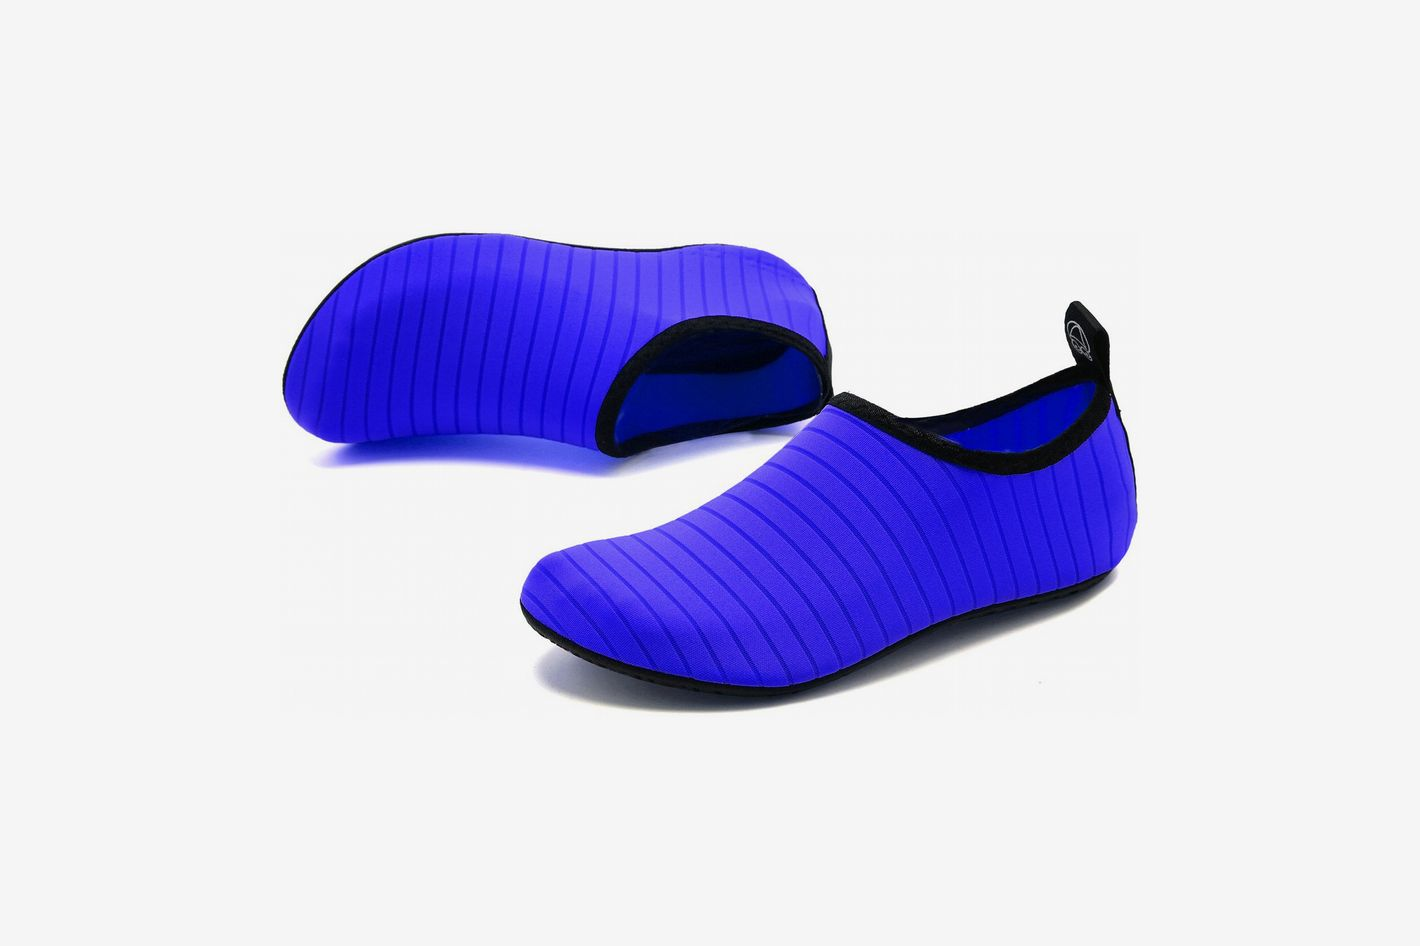 ff75d6b21 11 Best Water Shoes for Women — 2019